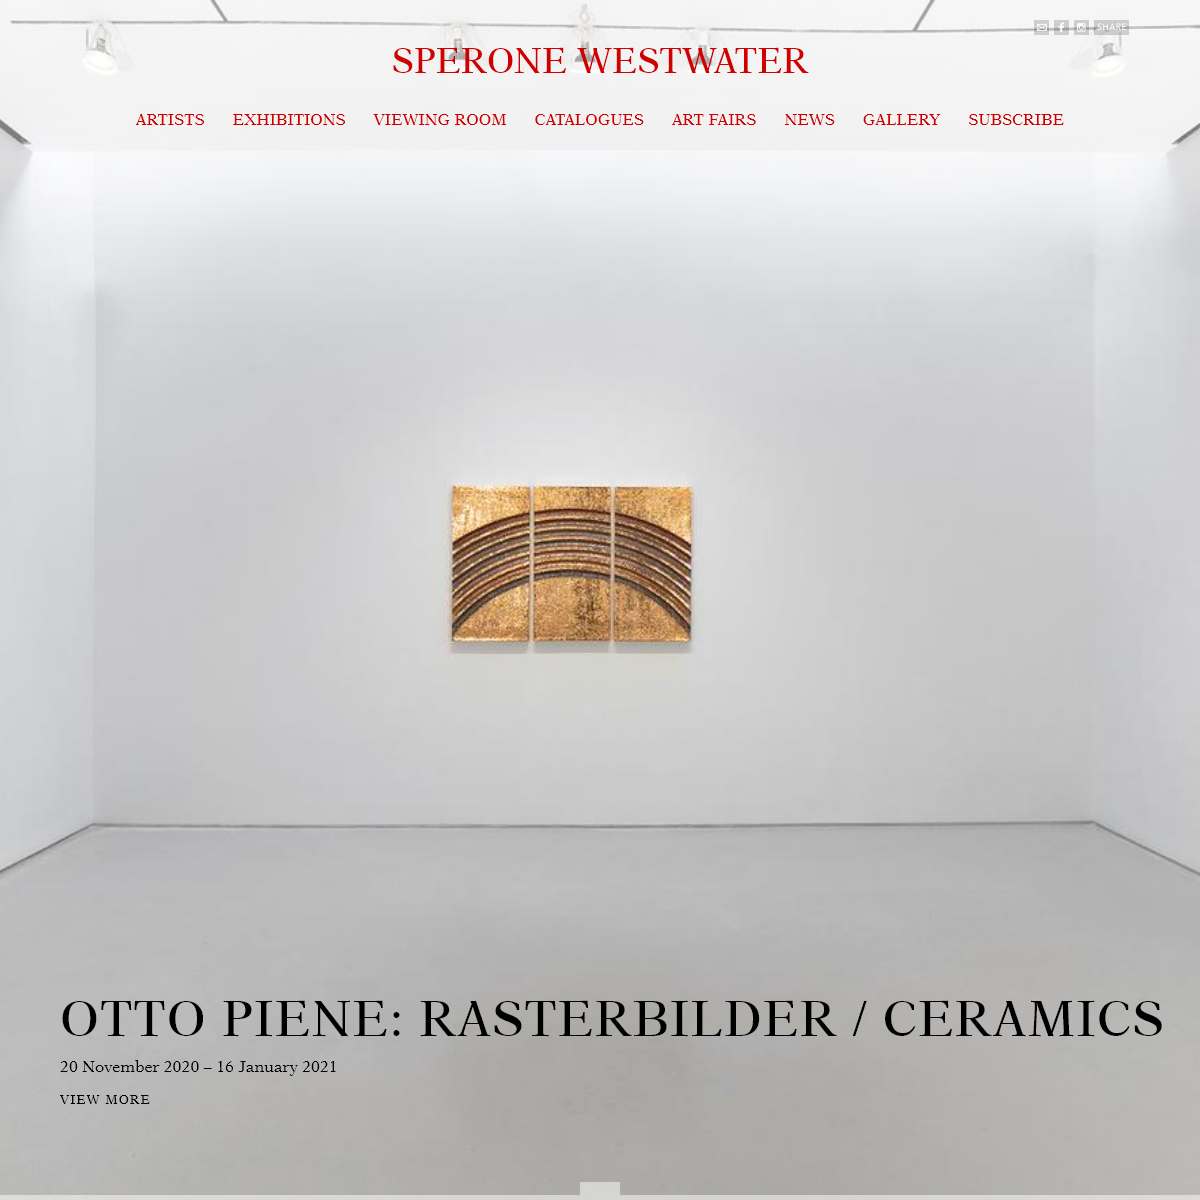 Sperone Westwater Gallery